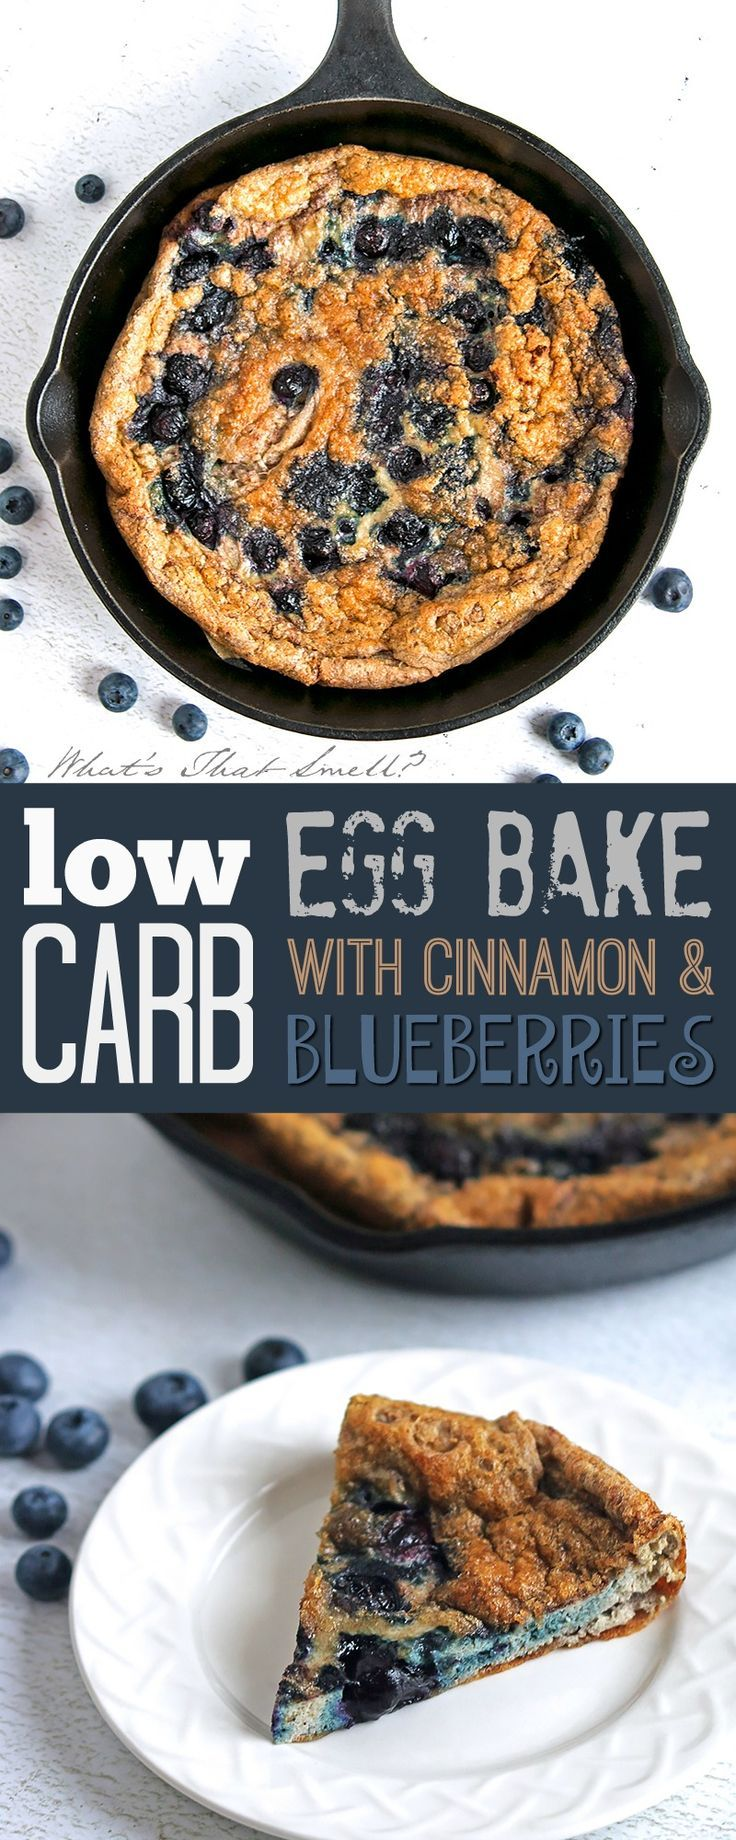 Low Carb Egg Bake with Blueberries and Cinnamon - Gluten-free, paleo, LCHF this baked egg dish is slightly sweet thanks to the blueberries and while it seems like a weird combination, it really is very tasty!